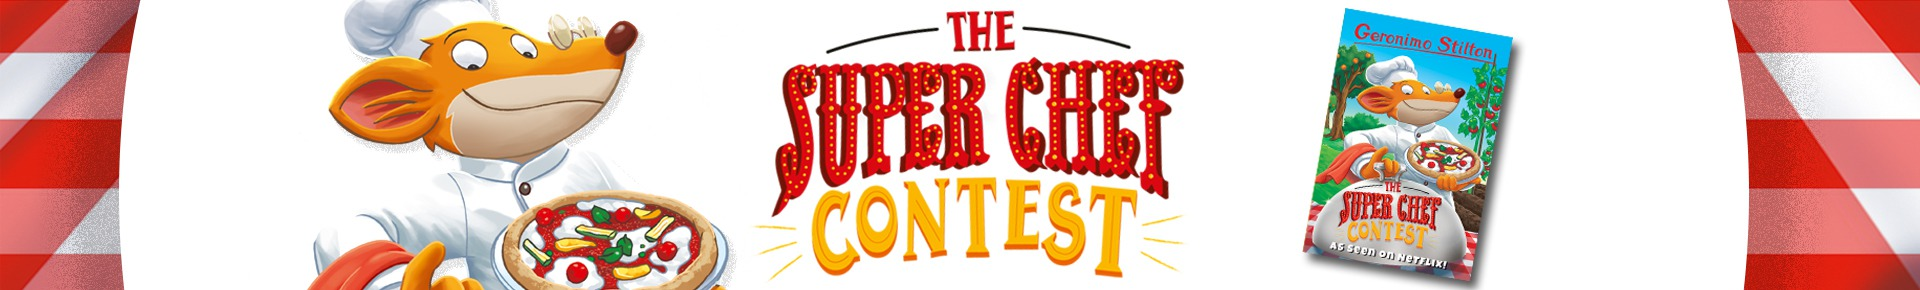 Super Chef Contest